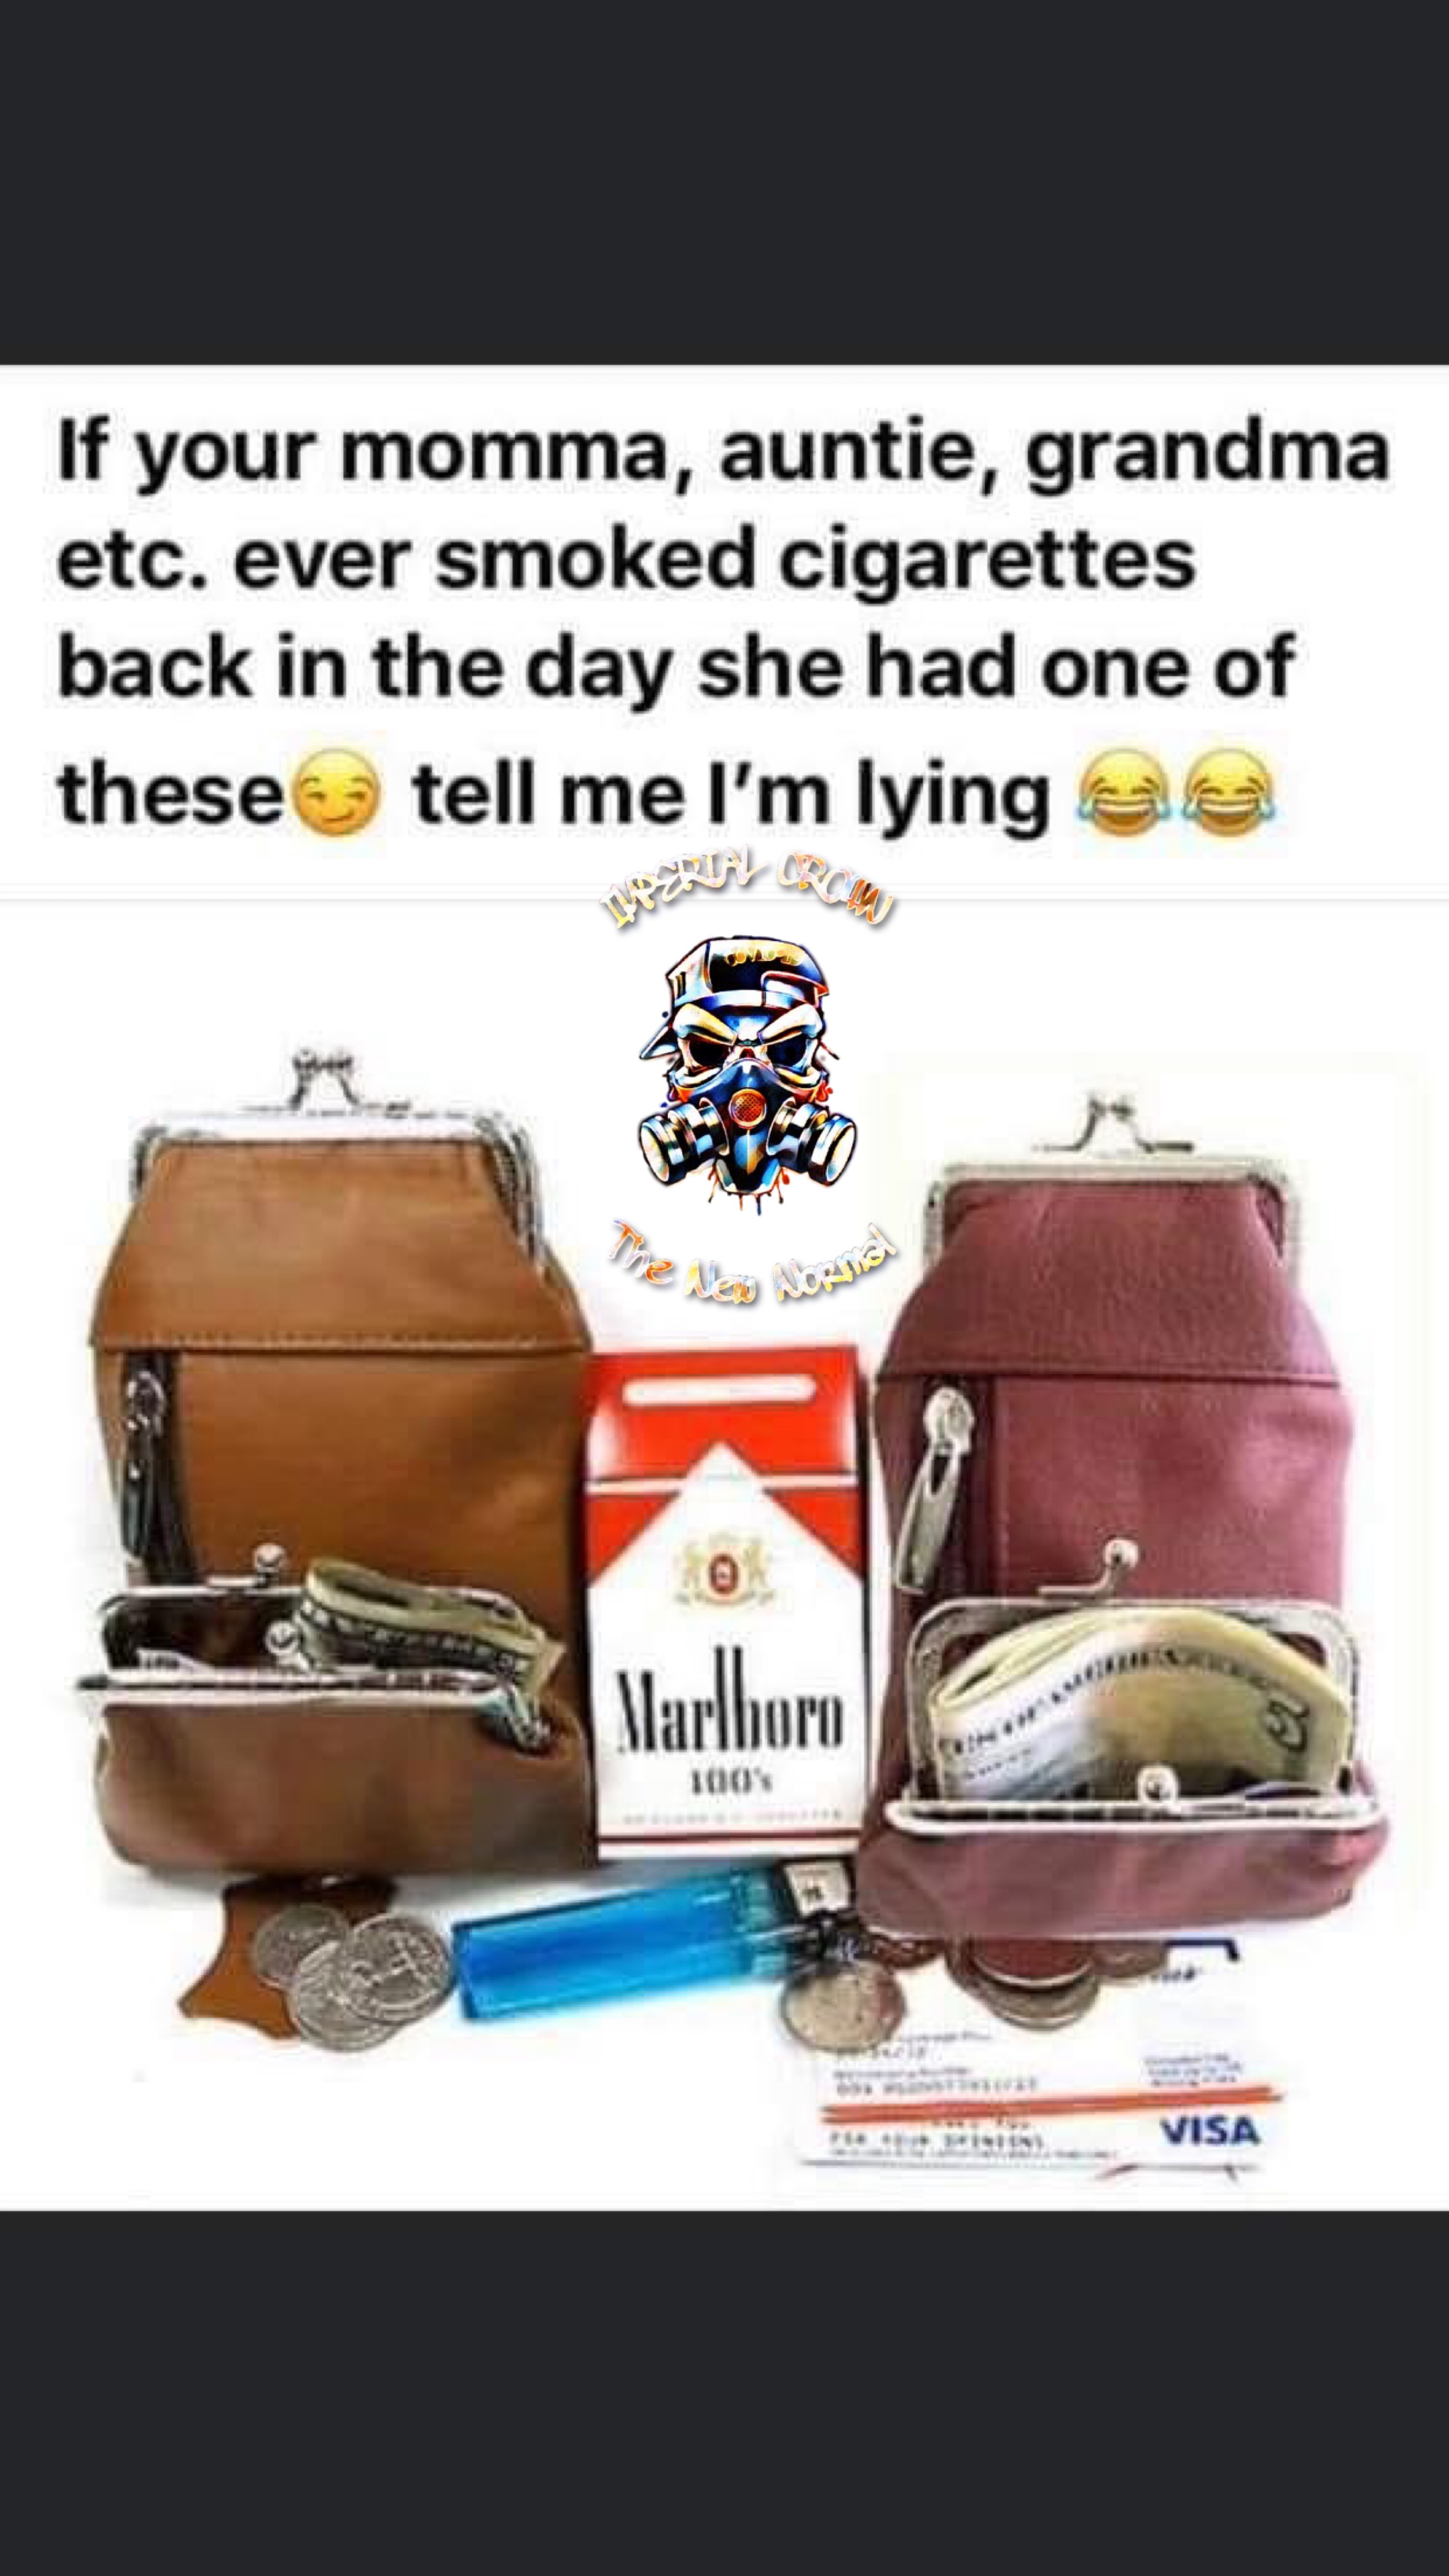 If your momma auntie grandma etc ever smoked cigarettes back in the day she had one of these tell me